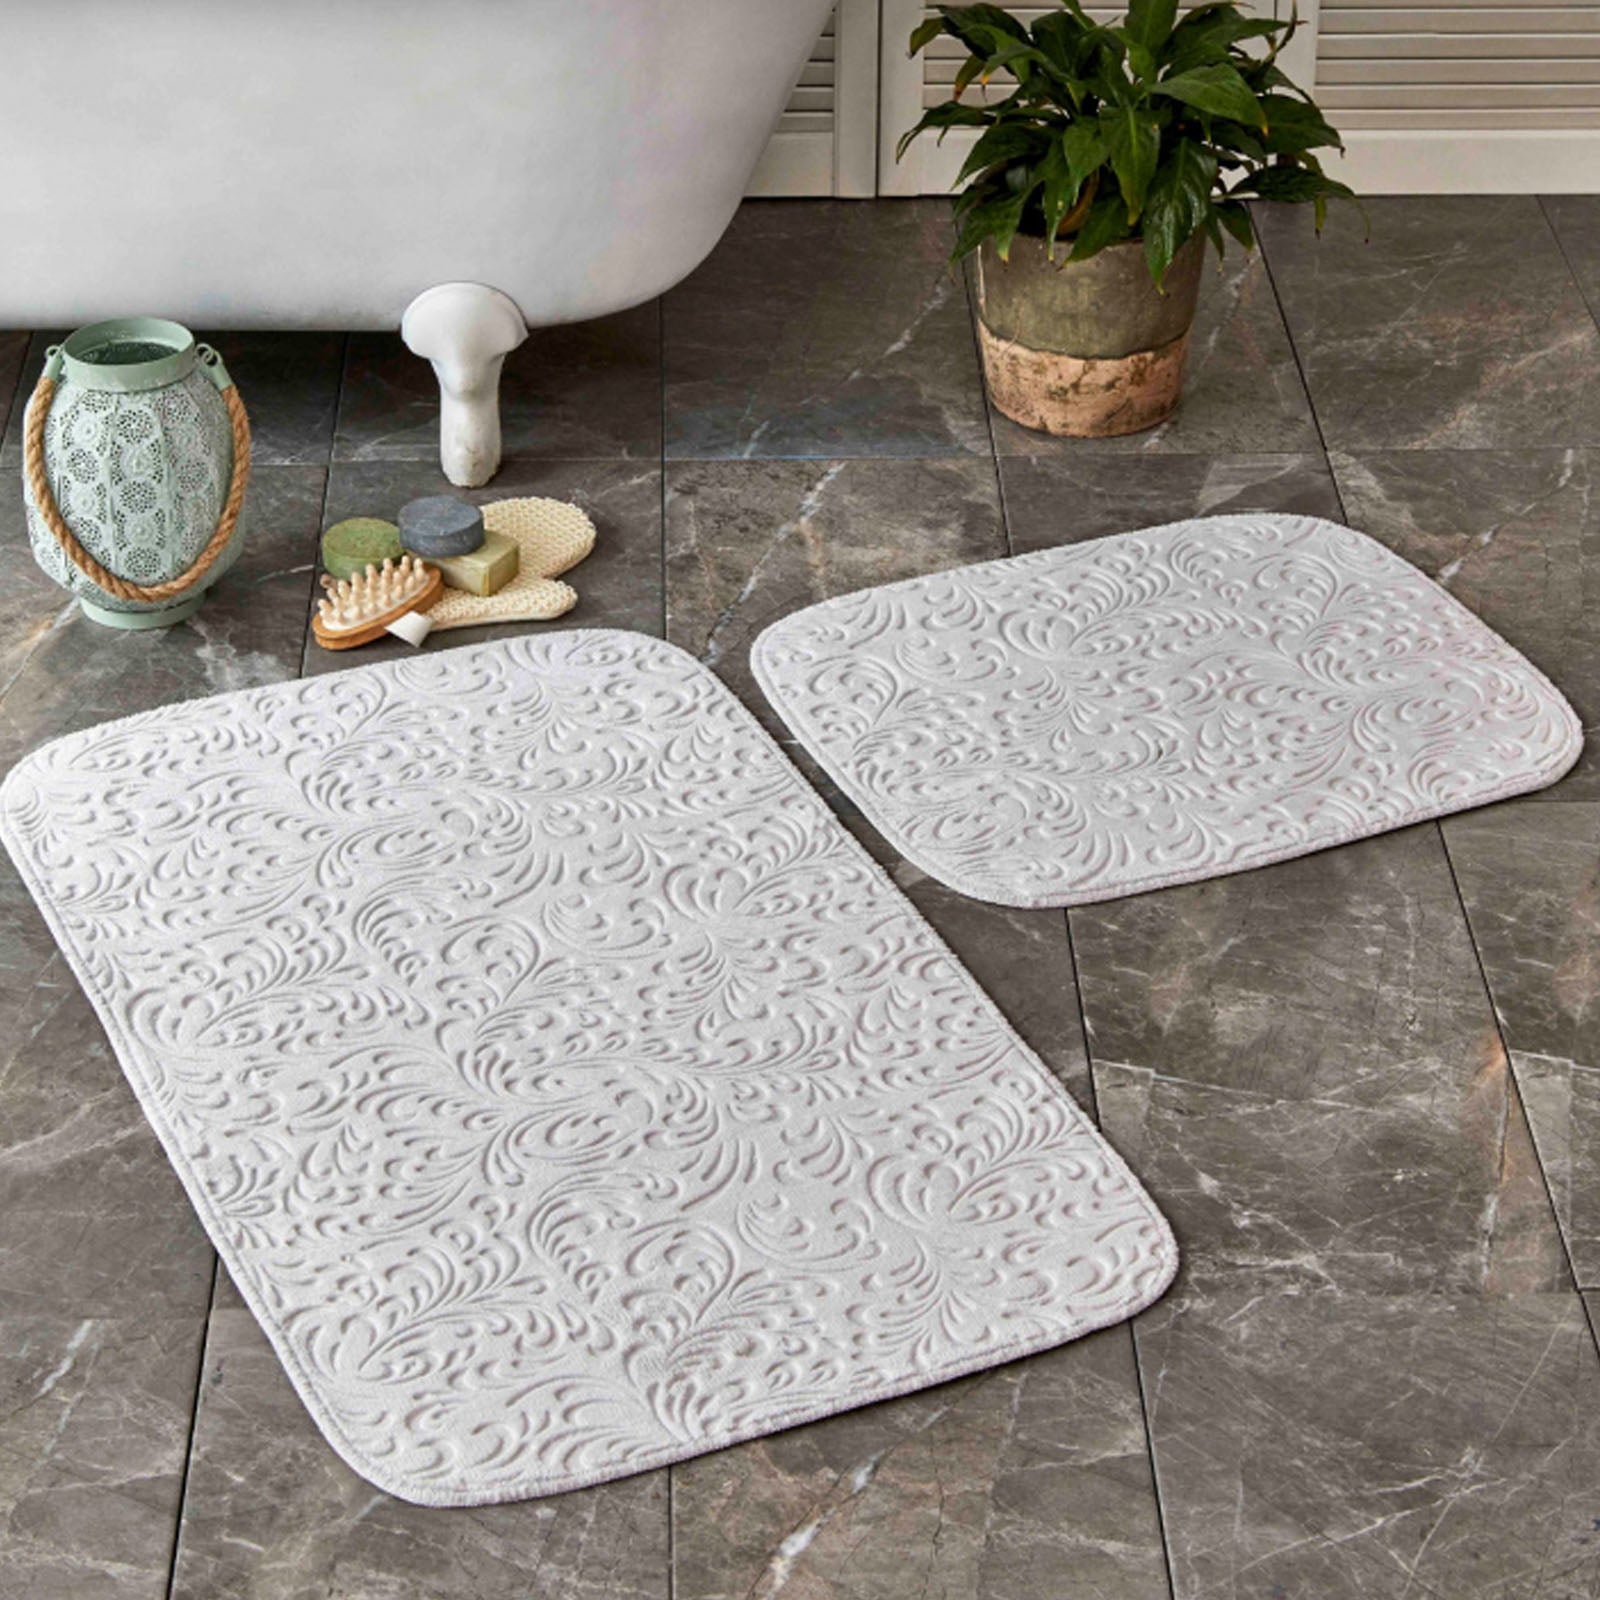 Karaca Home Delora Gray 2 Pieces Bath Mat  200.17.01.0209 -  سجادة حمام من كاراجا هوم ديلورا رمادي ، قطعتان - Shop Online Furniture and Home Decor Store in Dubai, UAE at ebarza